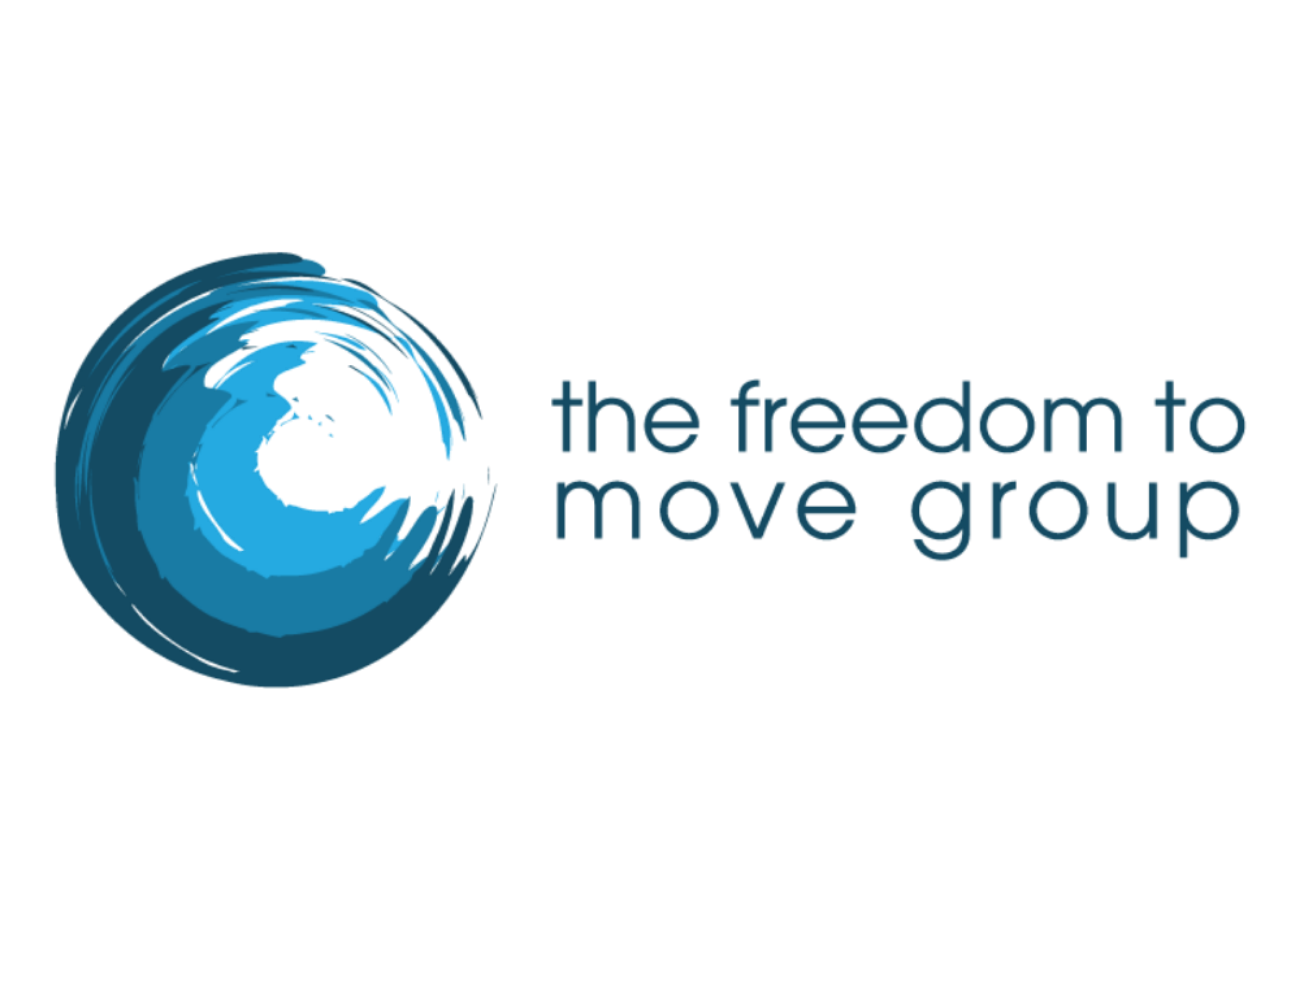 the freedom to move group - Tim Sitt